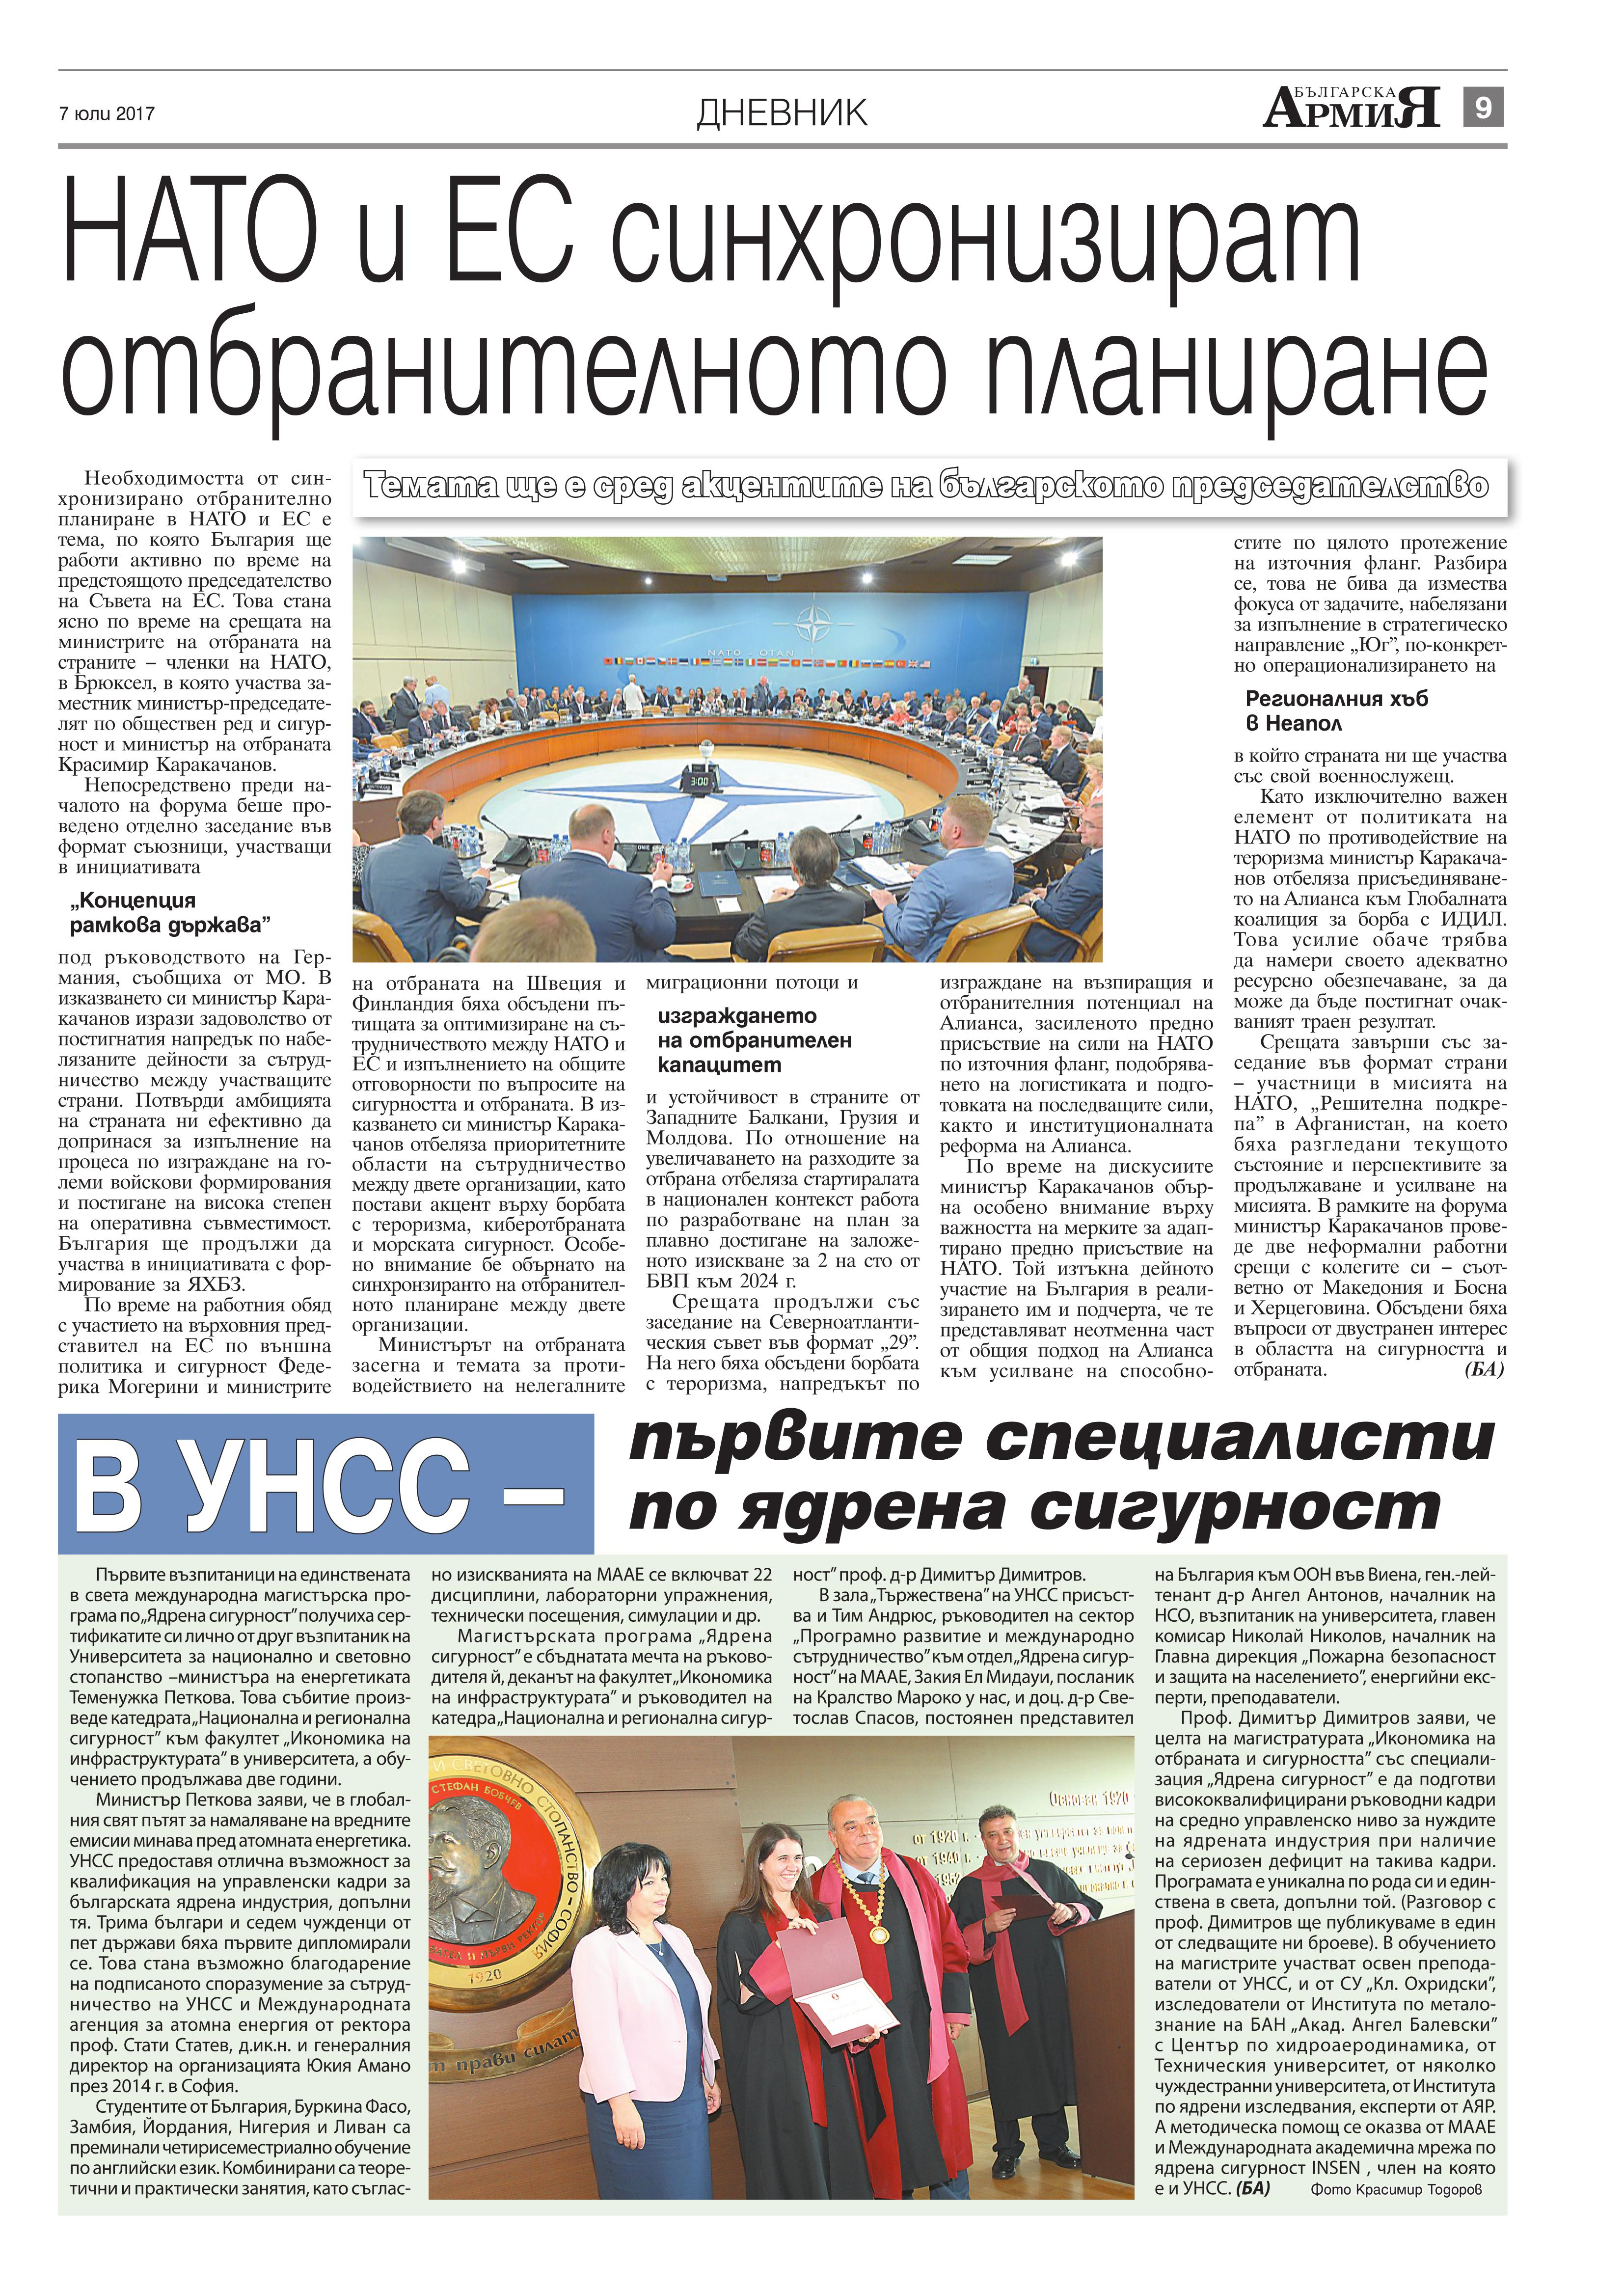 https://www.armymedia.bg/wp-content/uploads/2015/06/09.page1_-24.jpg